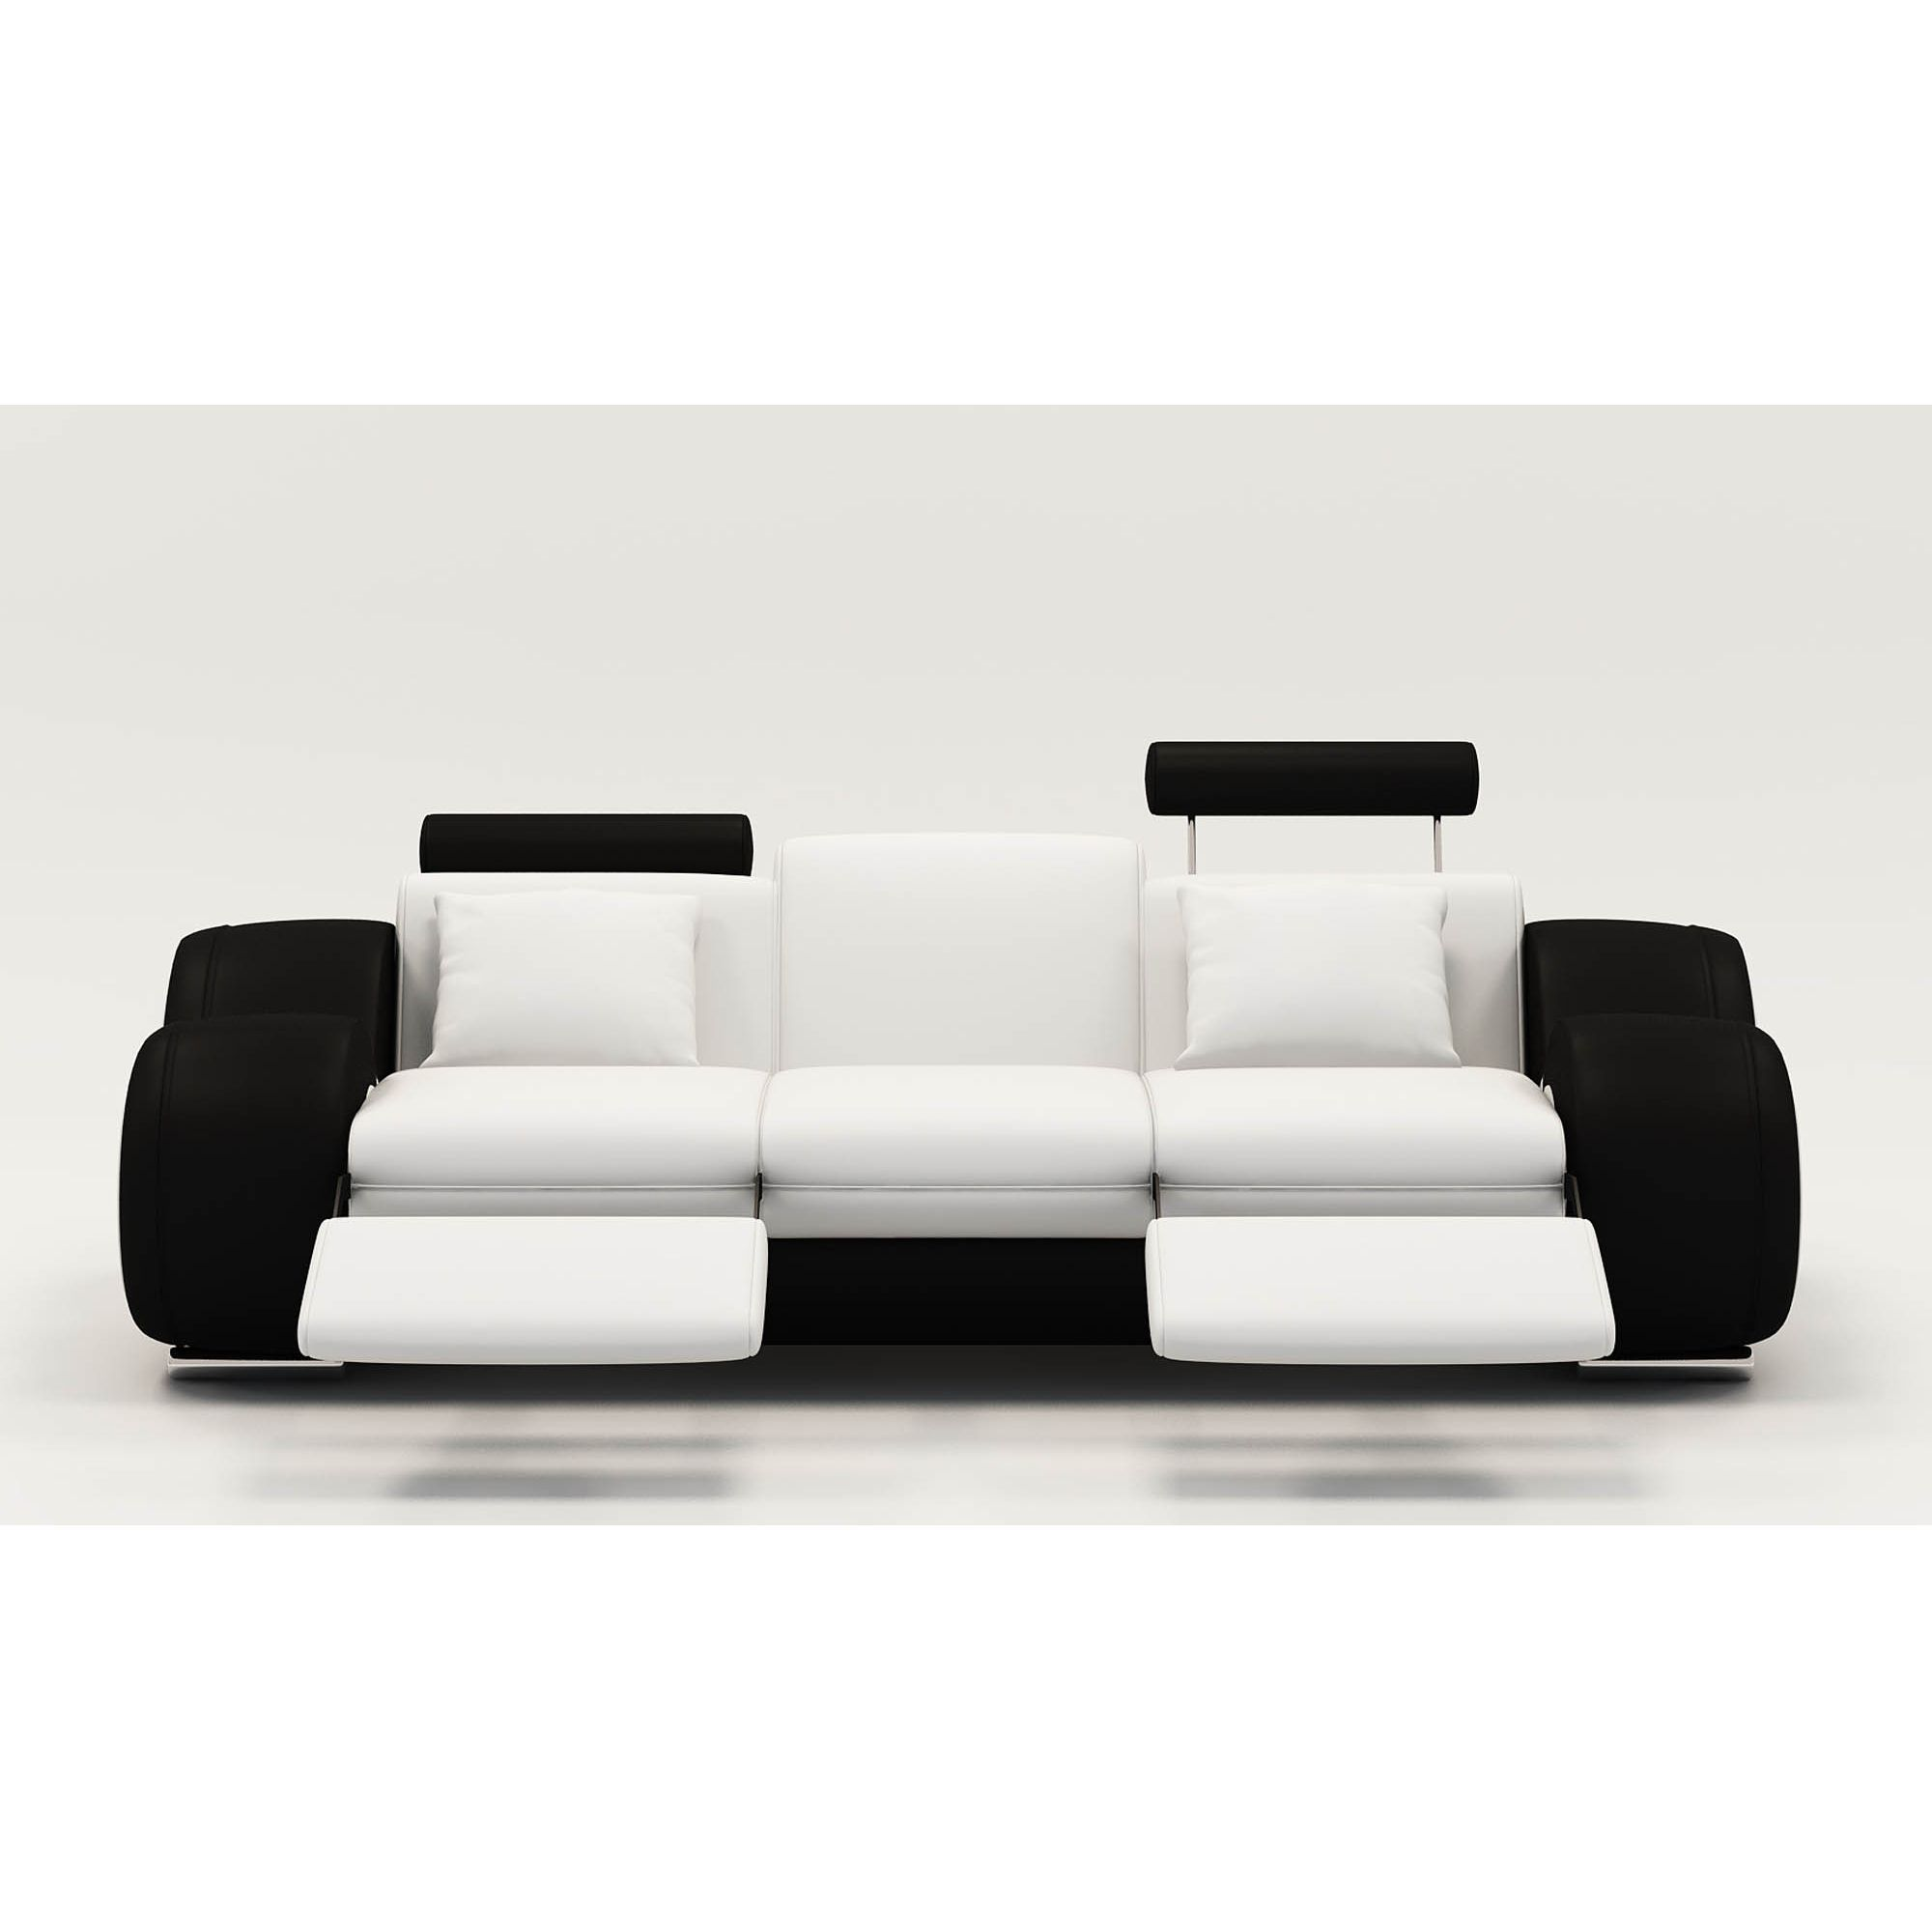 deco in paris canape design 3 places cuir noir et blanc. Black Bedroom Furniture Sets. Home Design Ideas